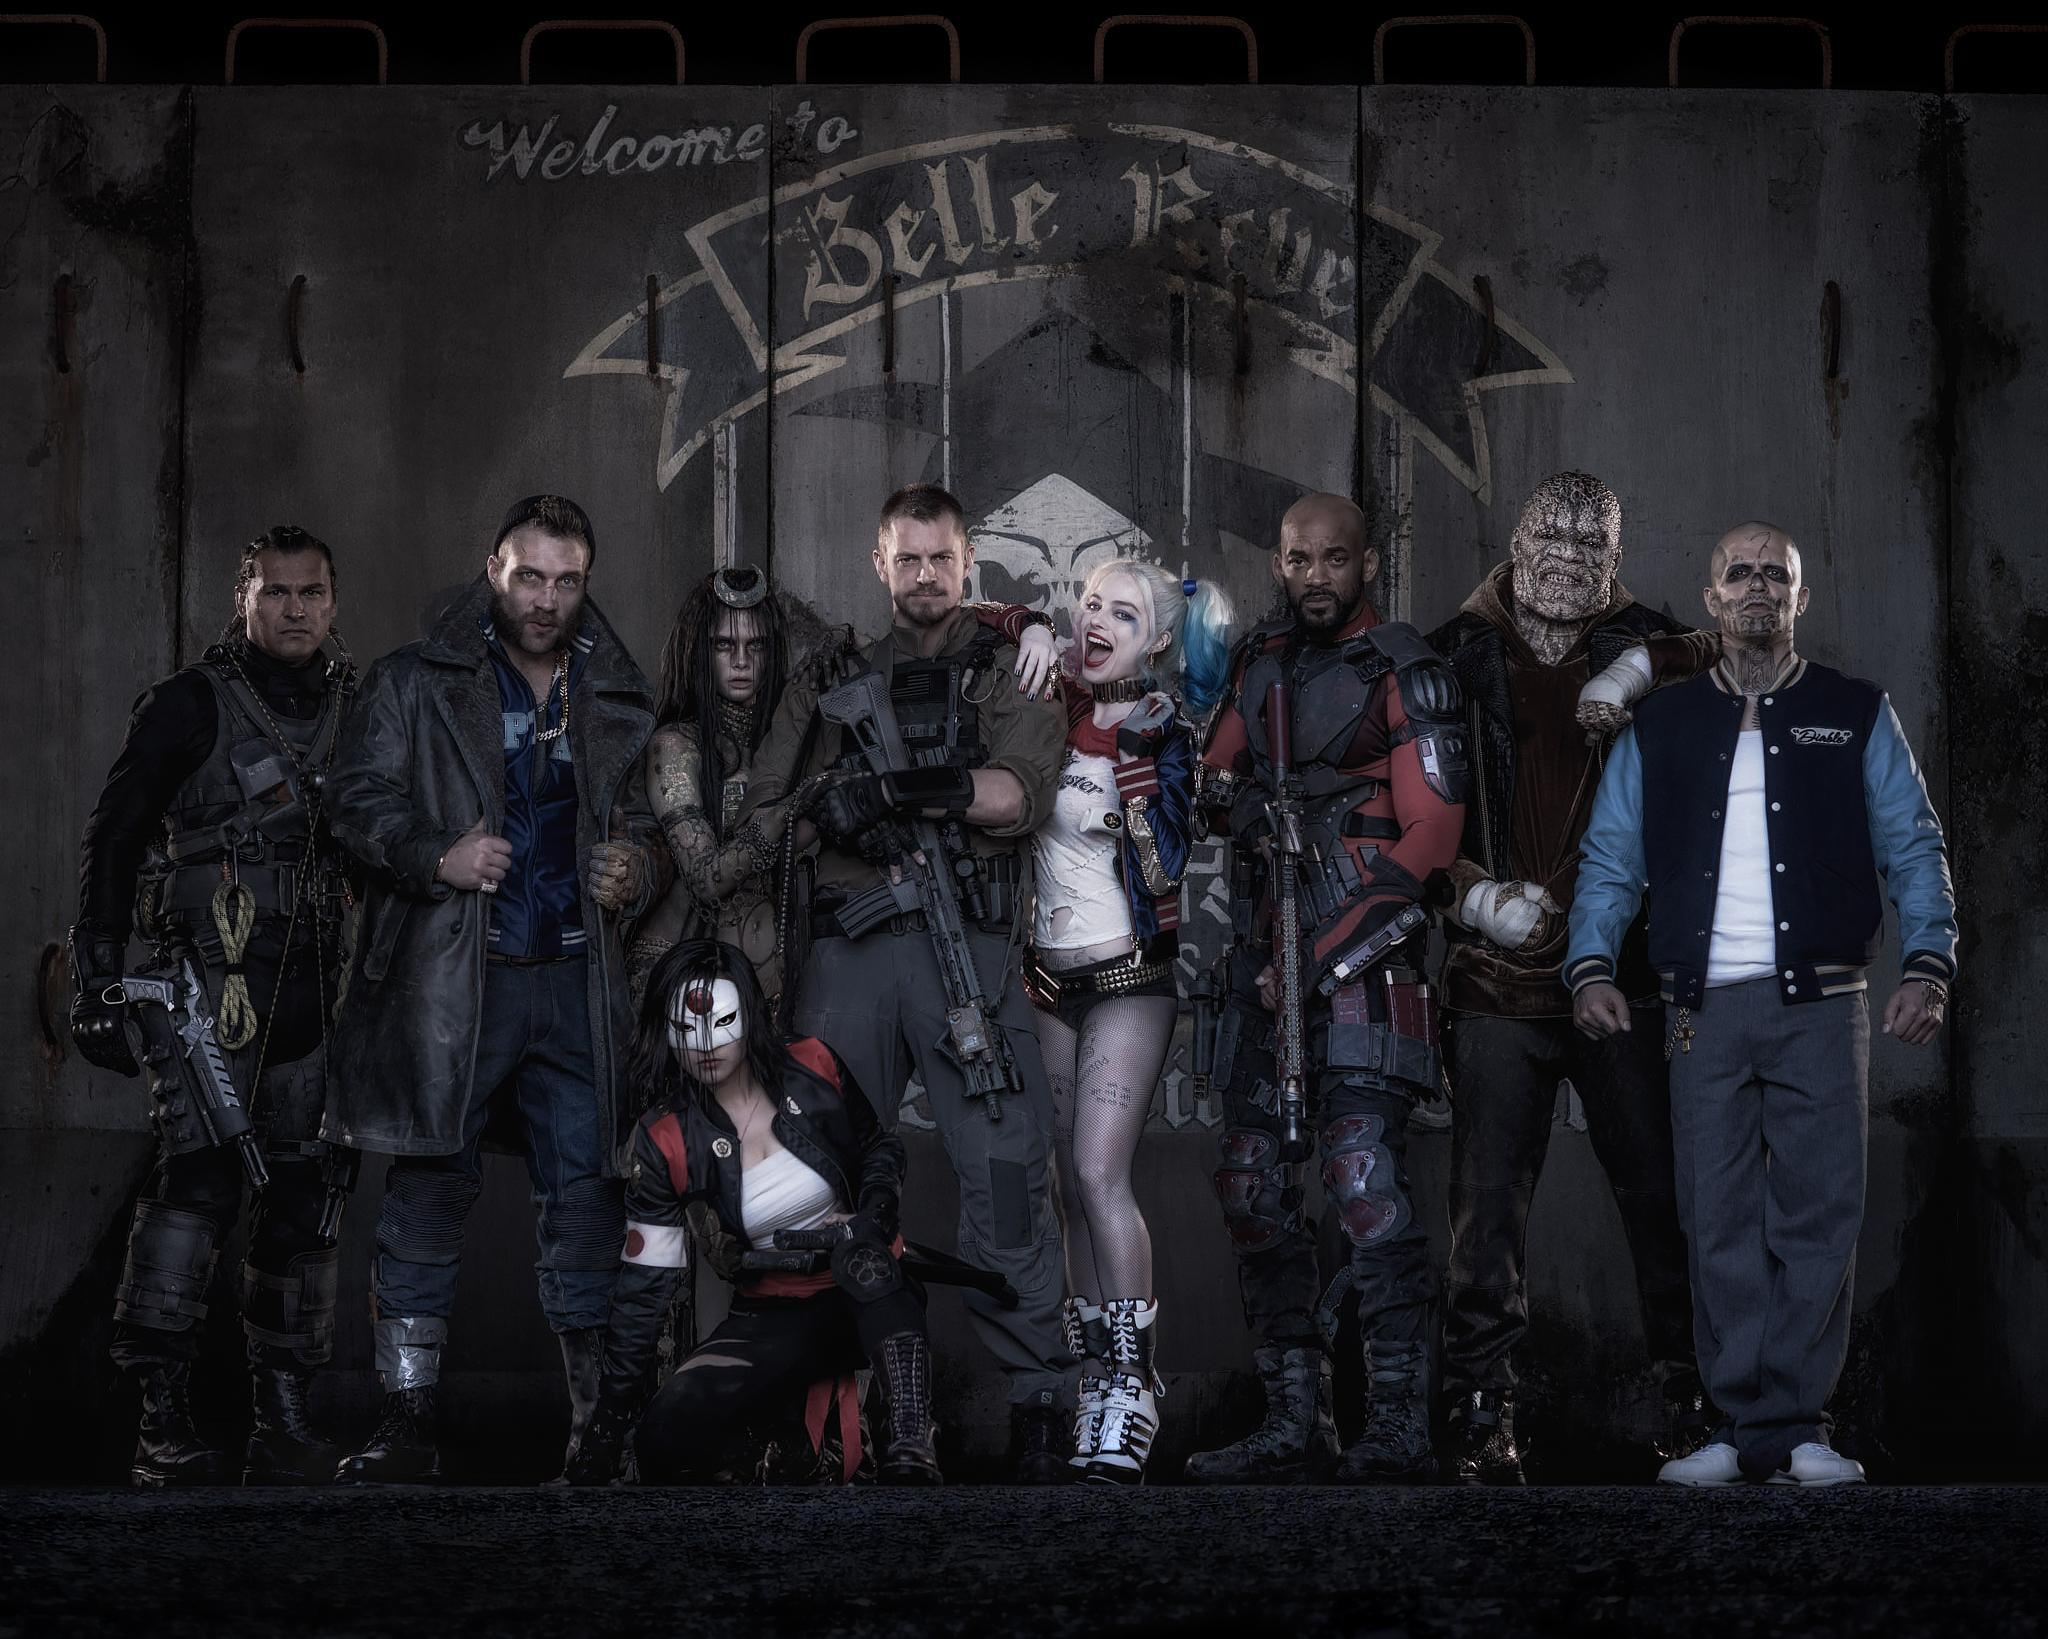 Photo du casting costumé de Suicide Squad réalisé par David Ayer avec Will Smith, Tom Hardy, Margot Robbie, Jared Leto, Jai Courtney et Cara Delevingne